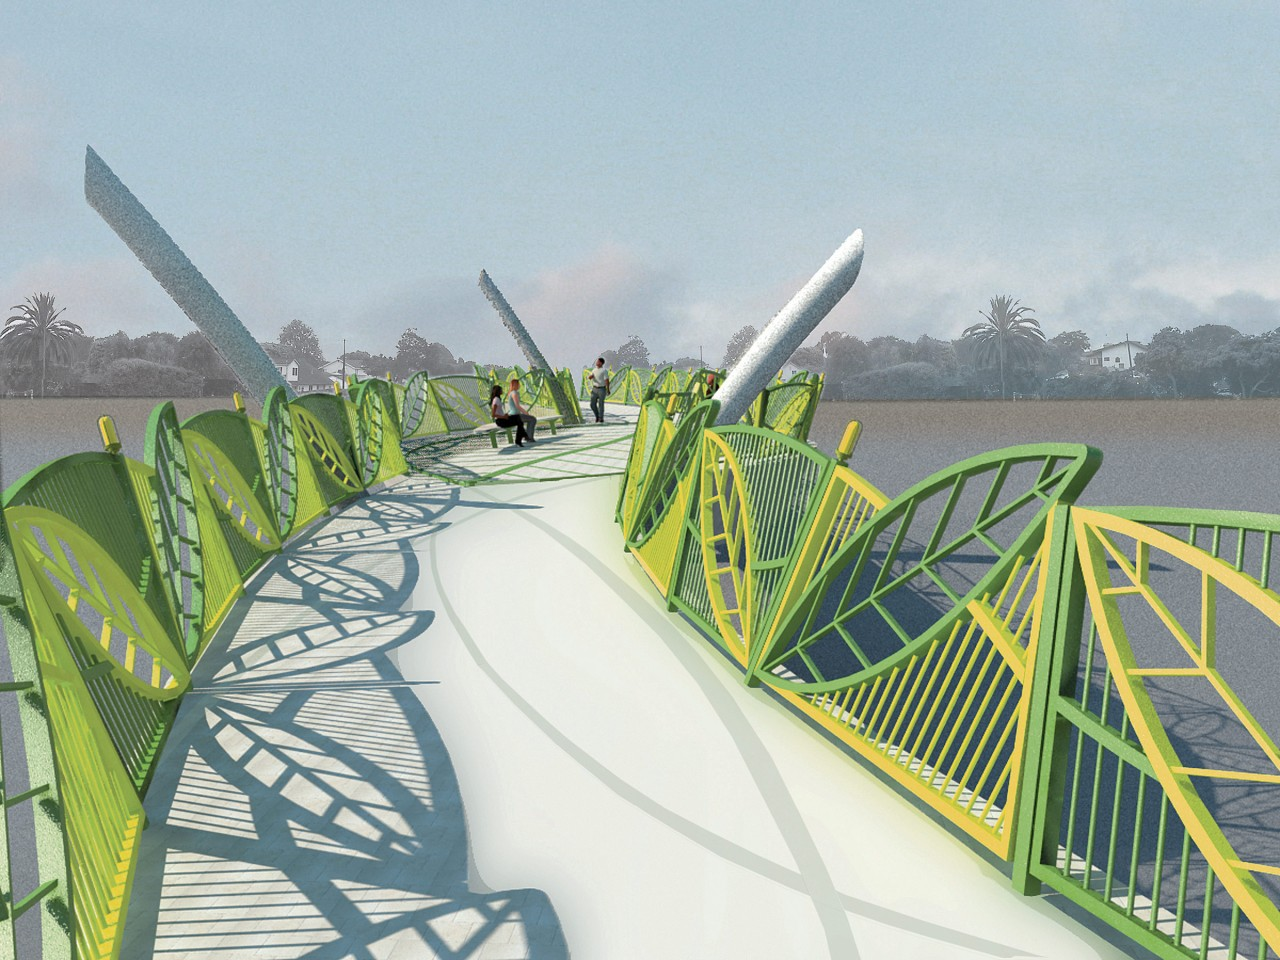 Leaf Bridge, Culver City, California / image 1